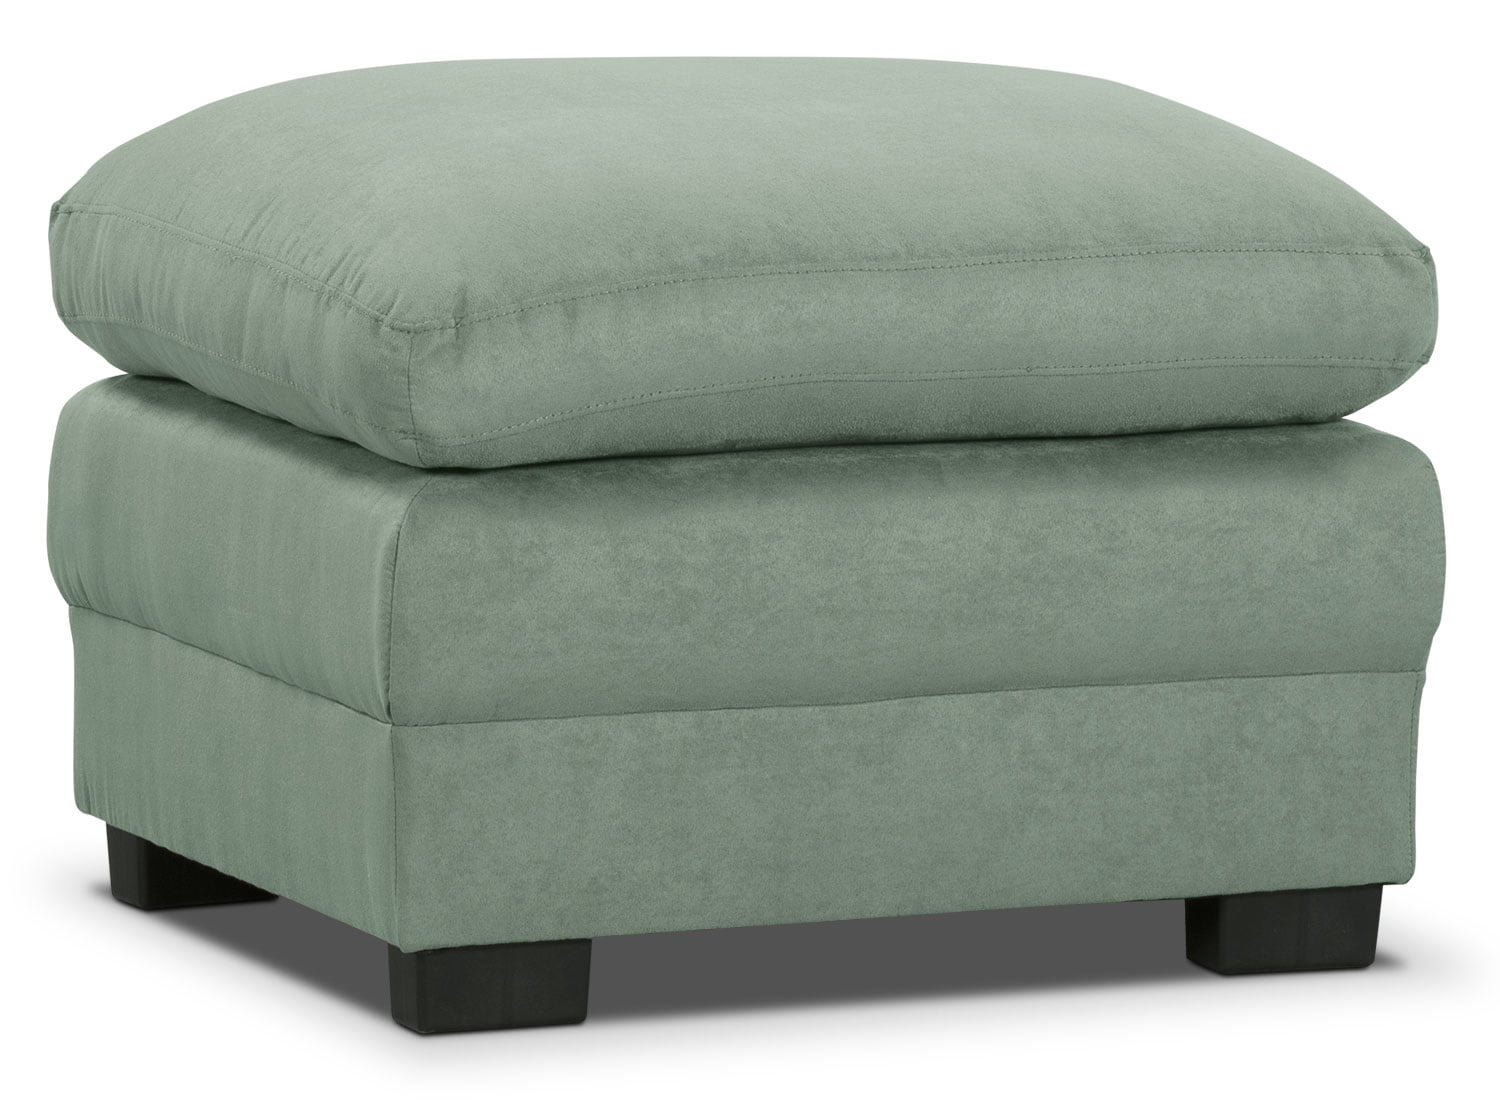 Living Room Furniture - Peyton Microsuede Ottoman - Blue Mist